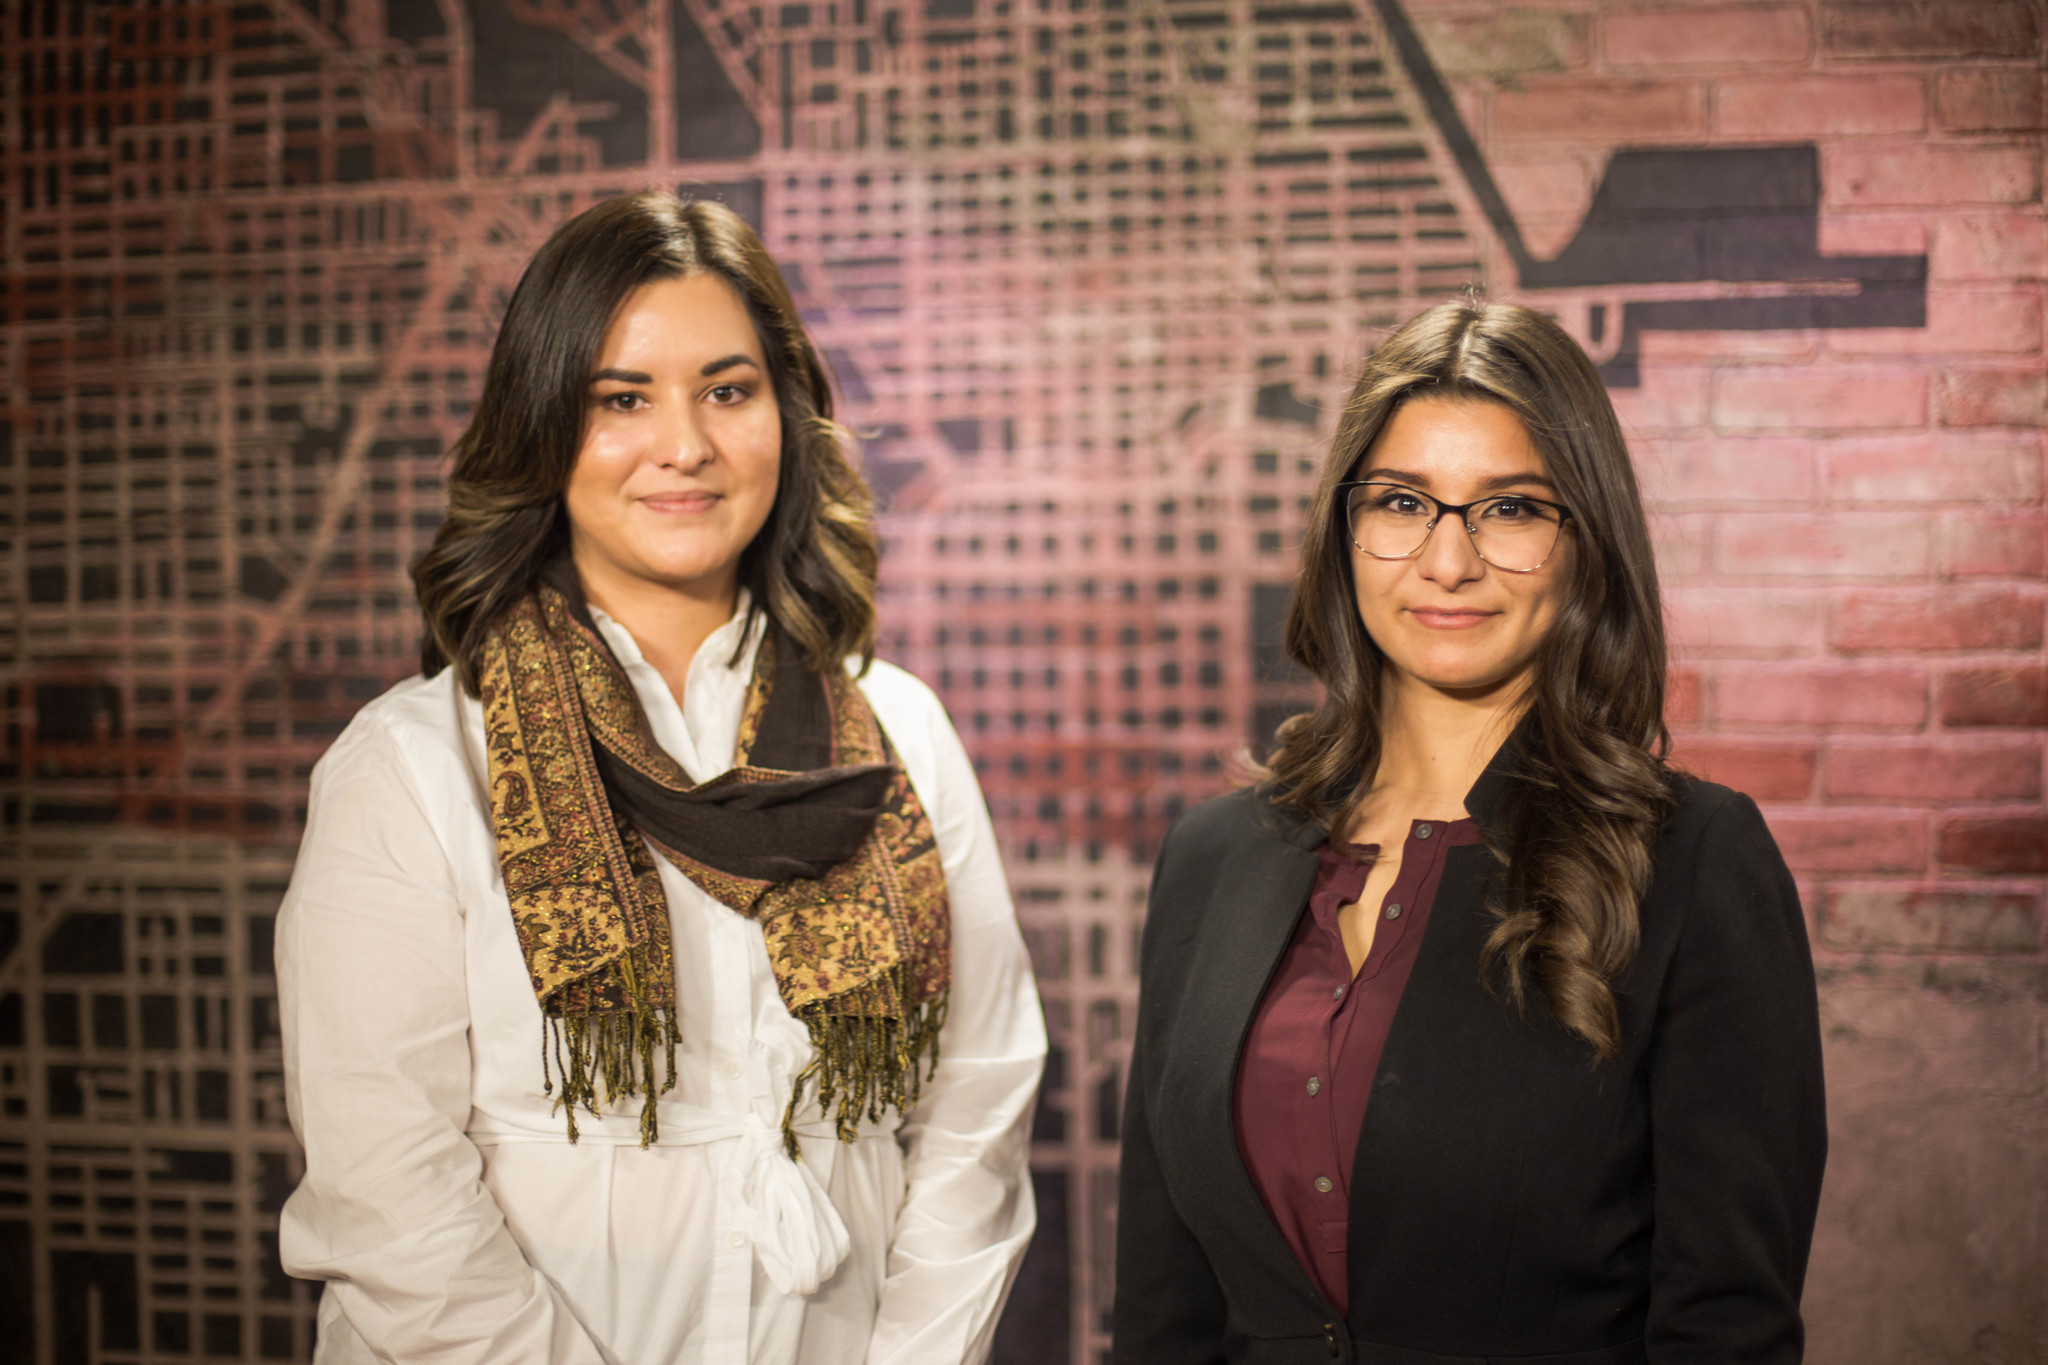 chicago women Chicago women in business aids its members in developing professional and personal skills and building relationships with corporate recruiters faculty alumni and other women students.